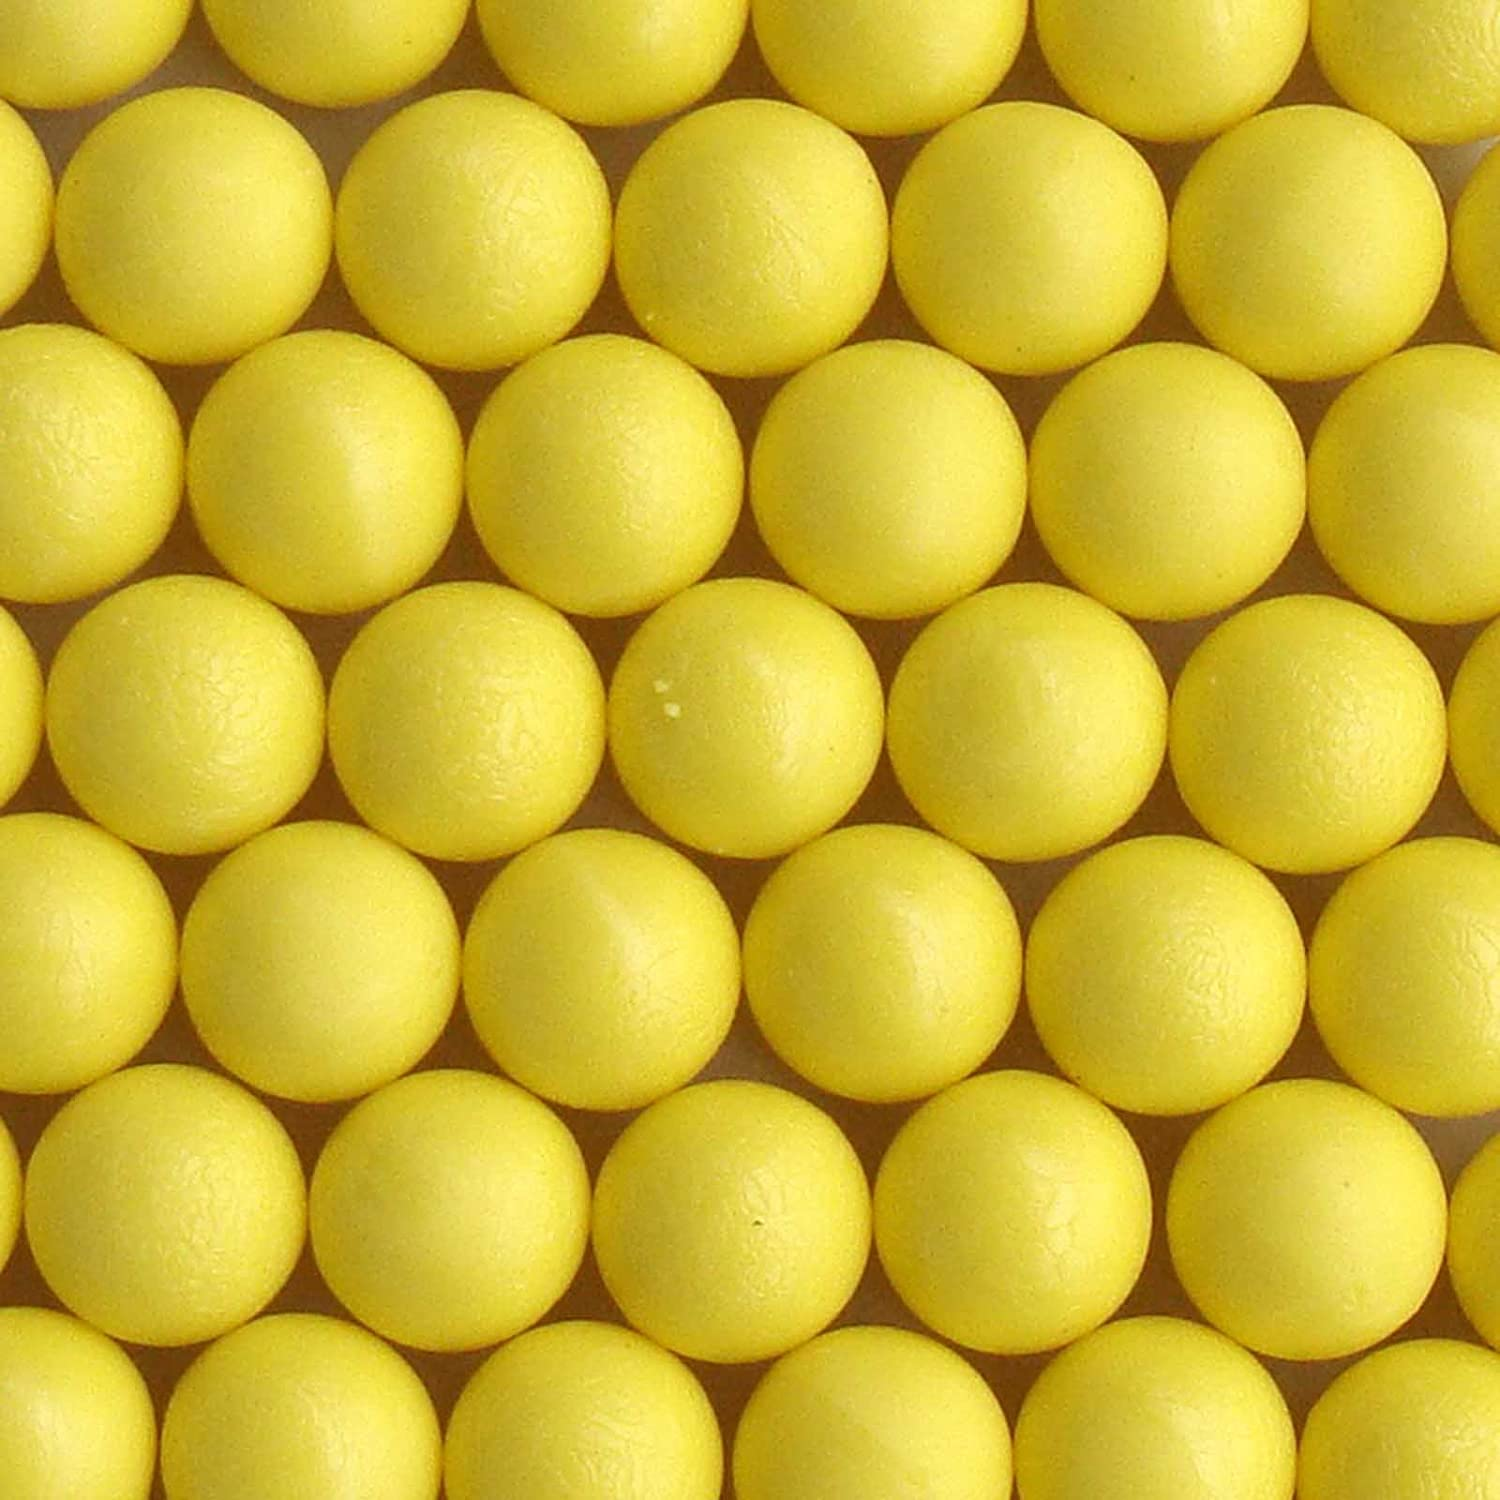 100 New .68 Cal Reusable Rubber Training Balls Paintballs Yellow Color GFSP Outdoor Sports